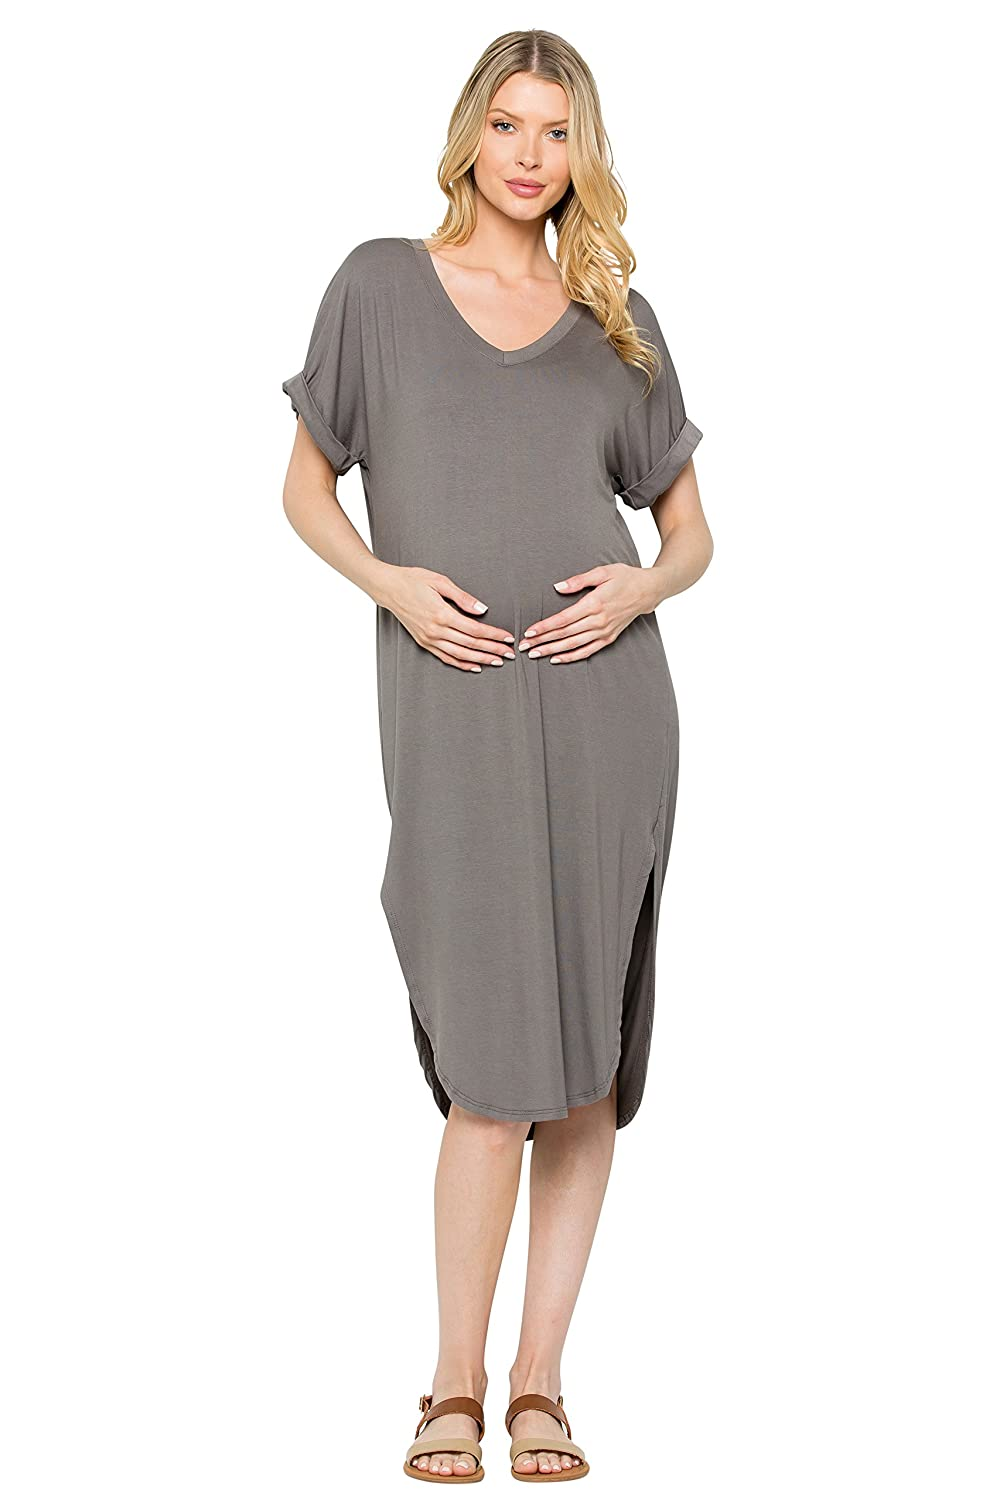 My Bump DRESS レディース B07DBGFHD5 Large|D.grey Sd D.grey Sd Large